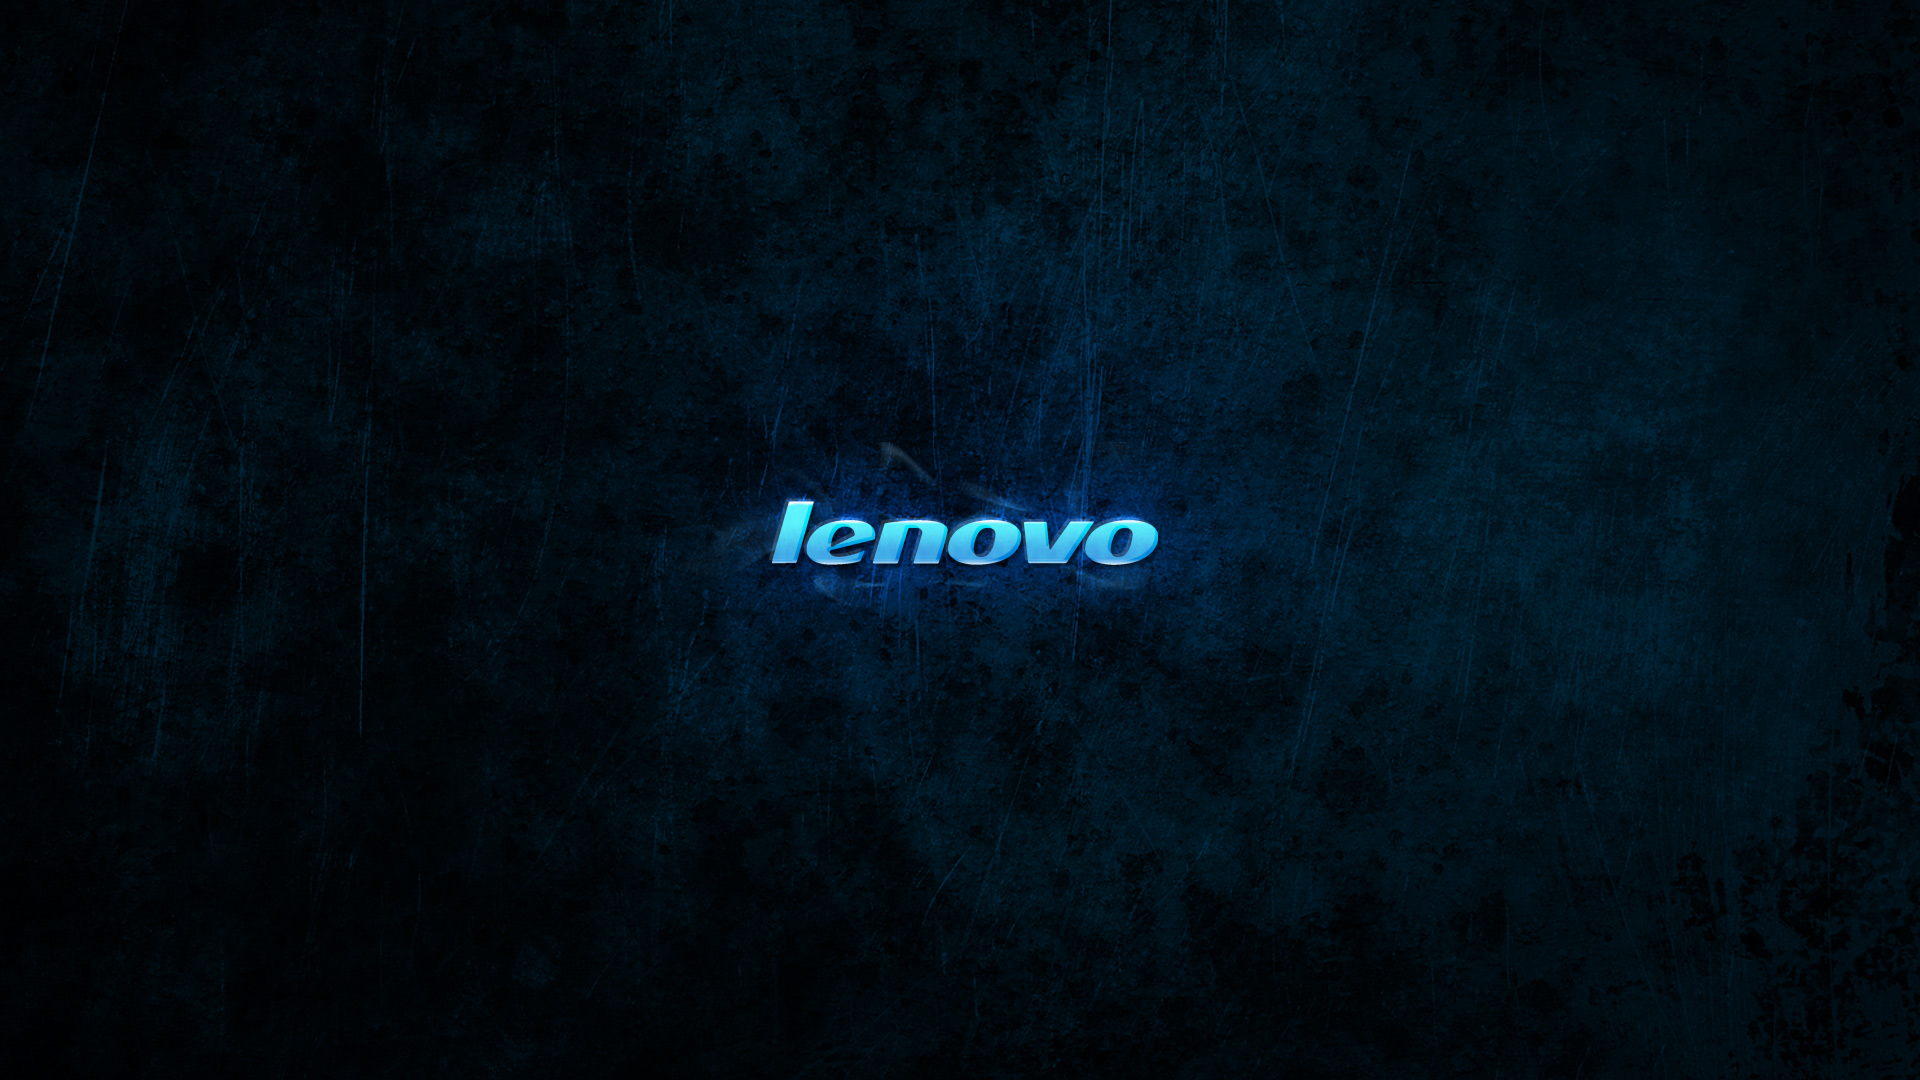 Download Lenovo Windows 8 Wallpapers pictures in high definition or 1920x1080